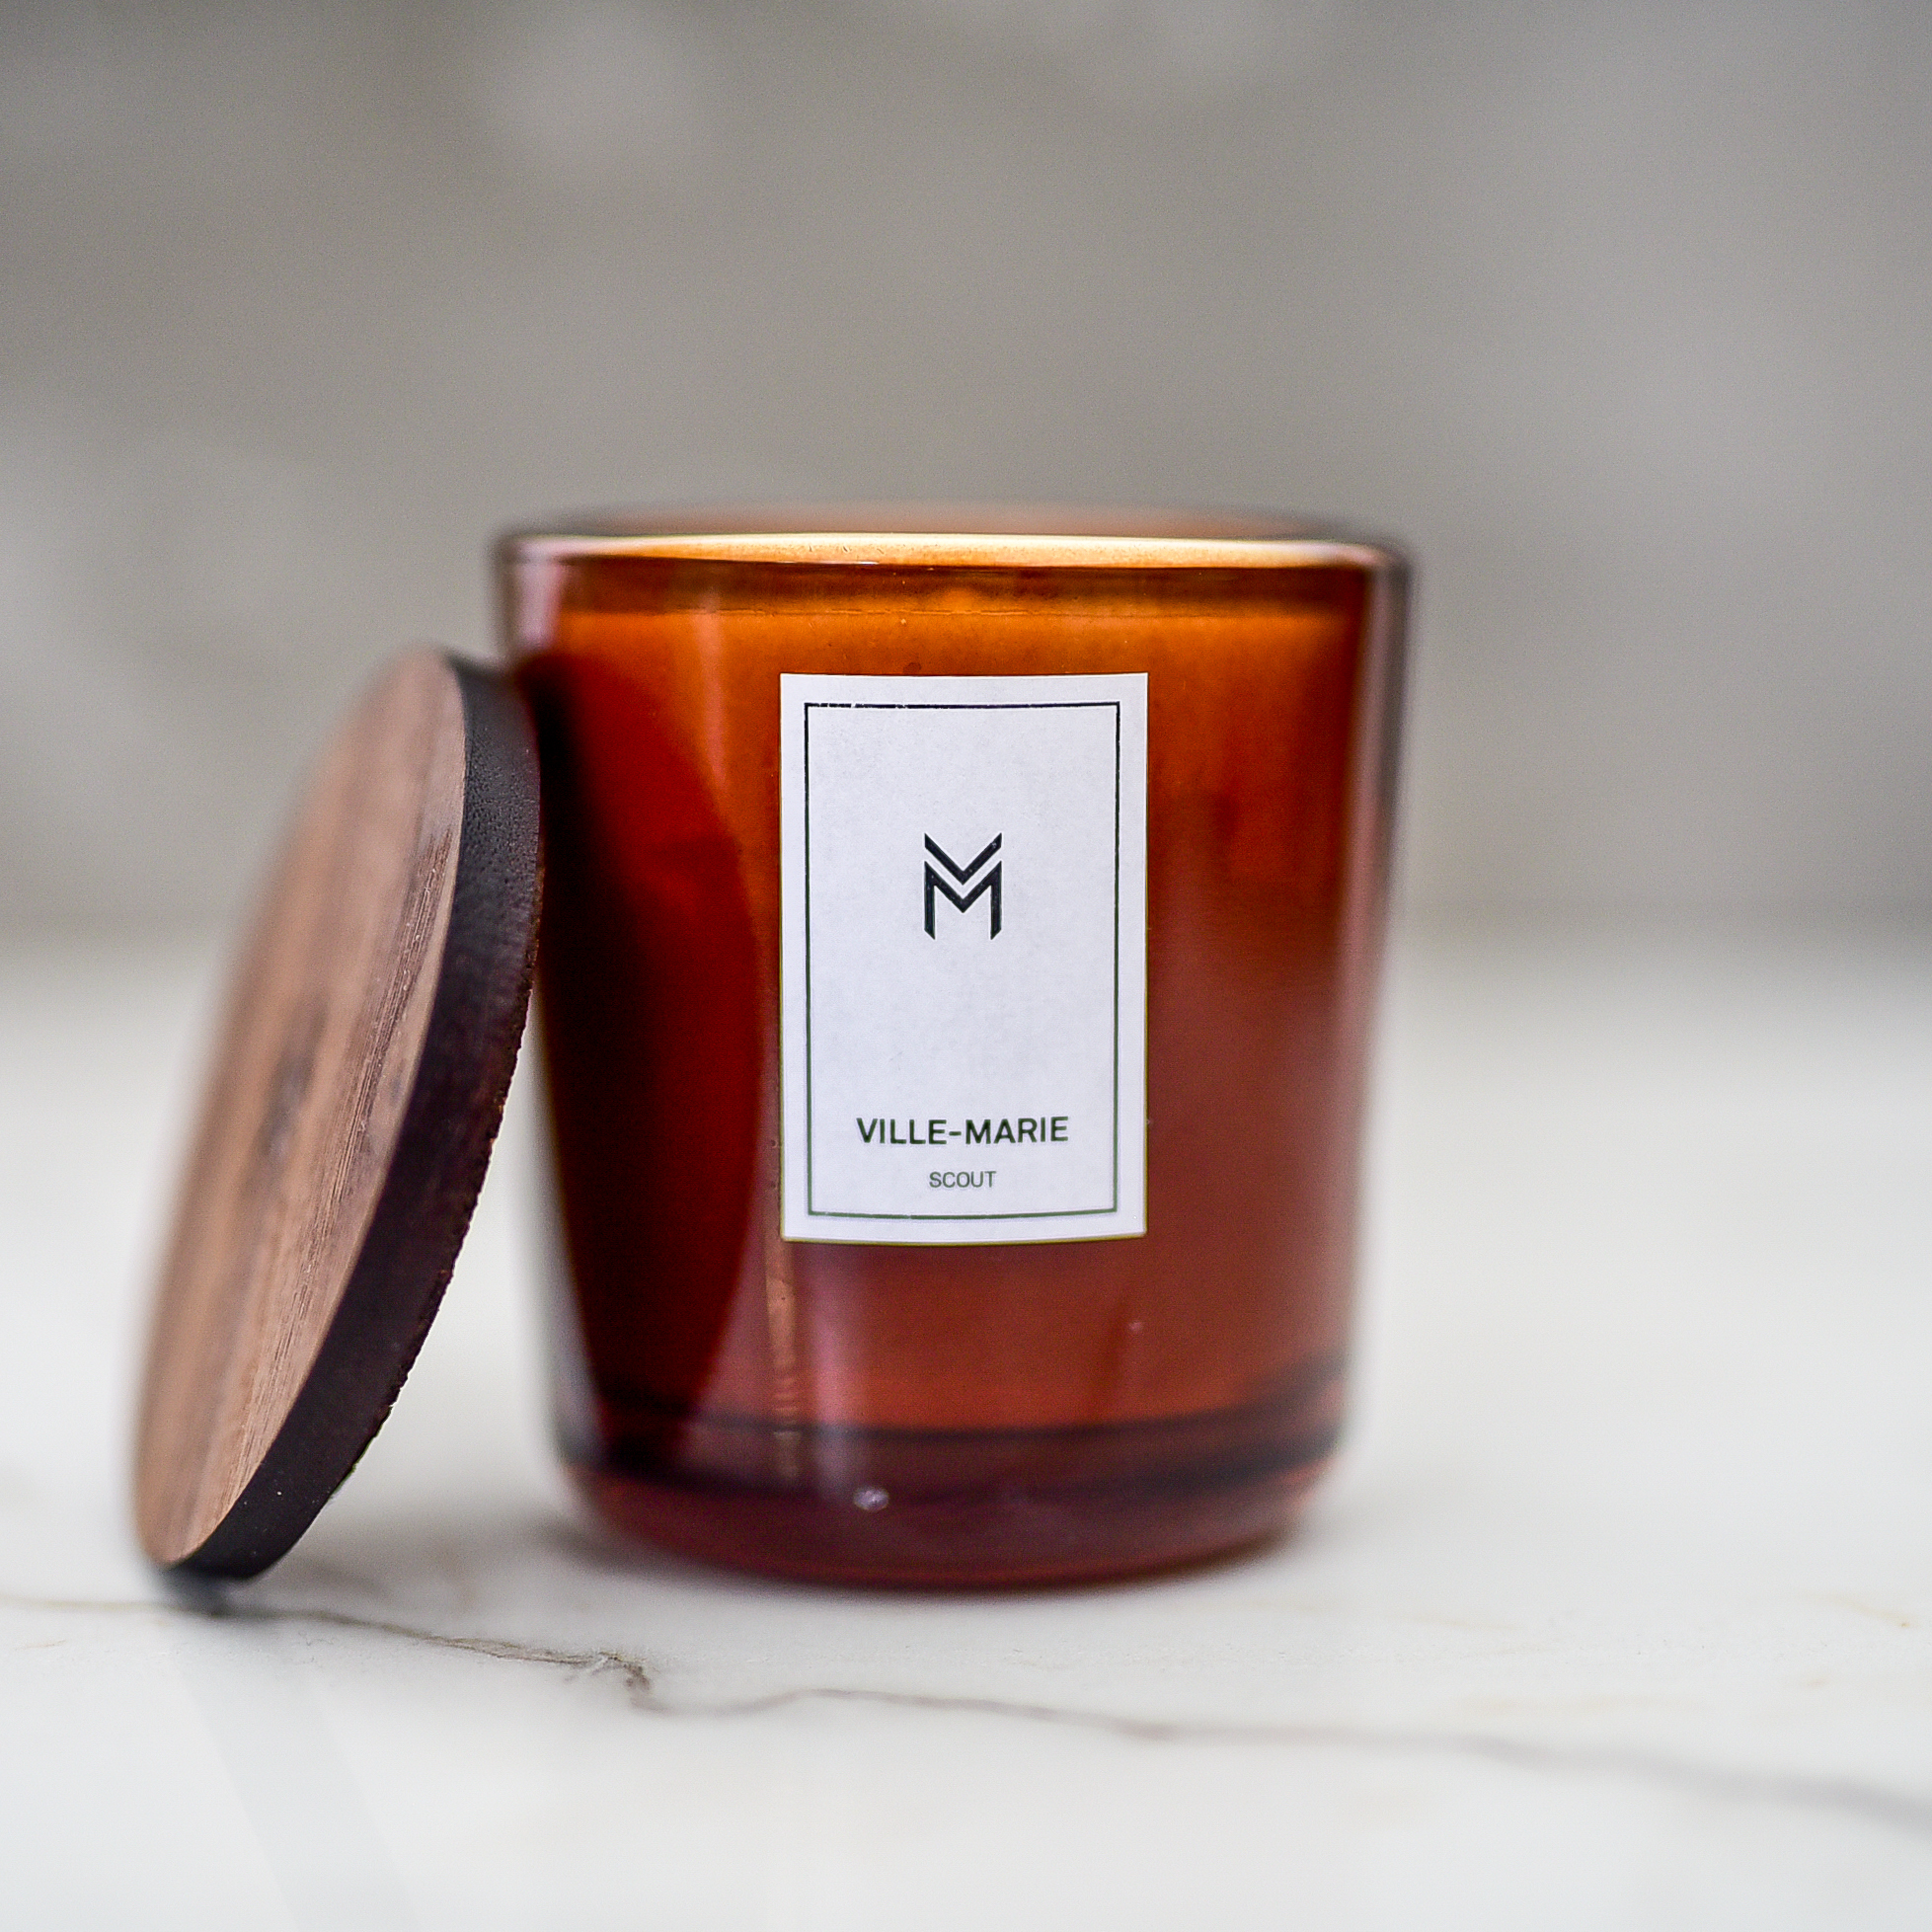 Ville-Marie Candle Scout - HOME GIFT IDEAS - THE ULTIMATE GIFT LIST FOR MODERN MEN